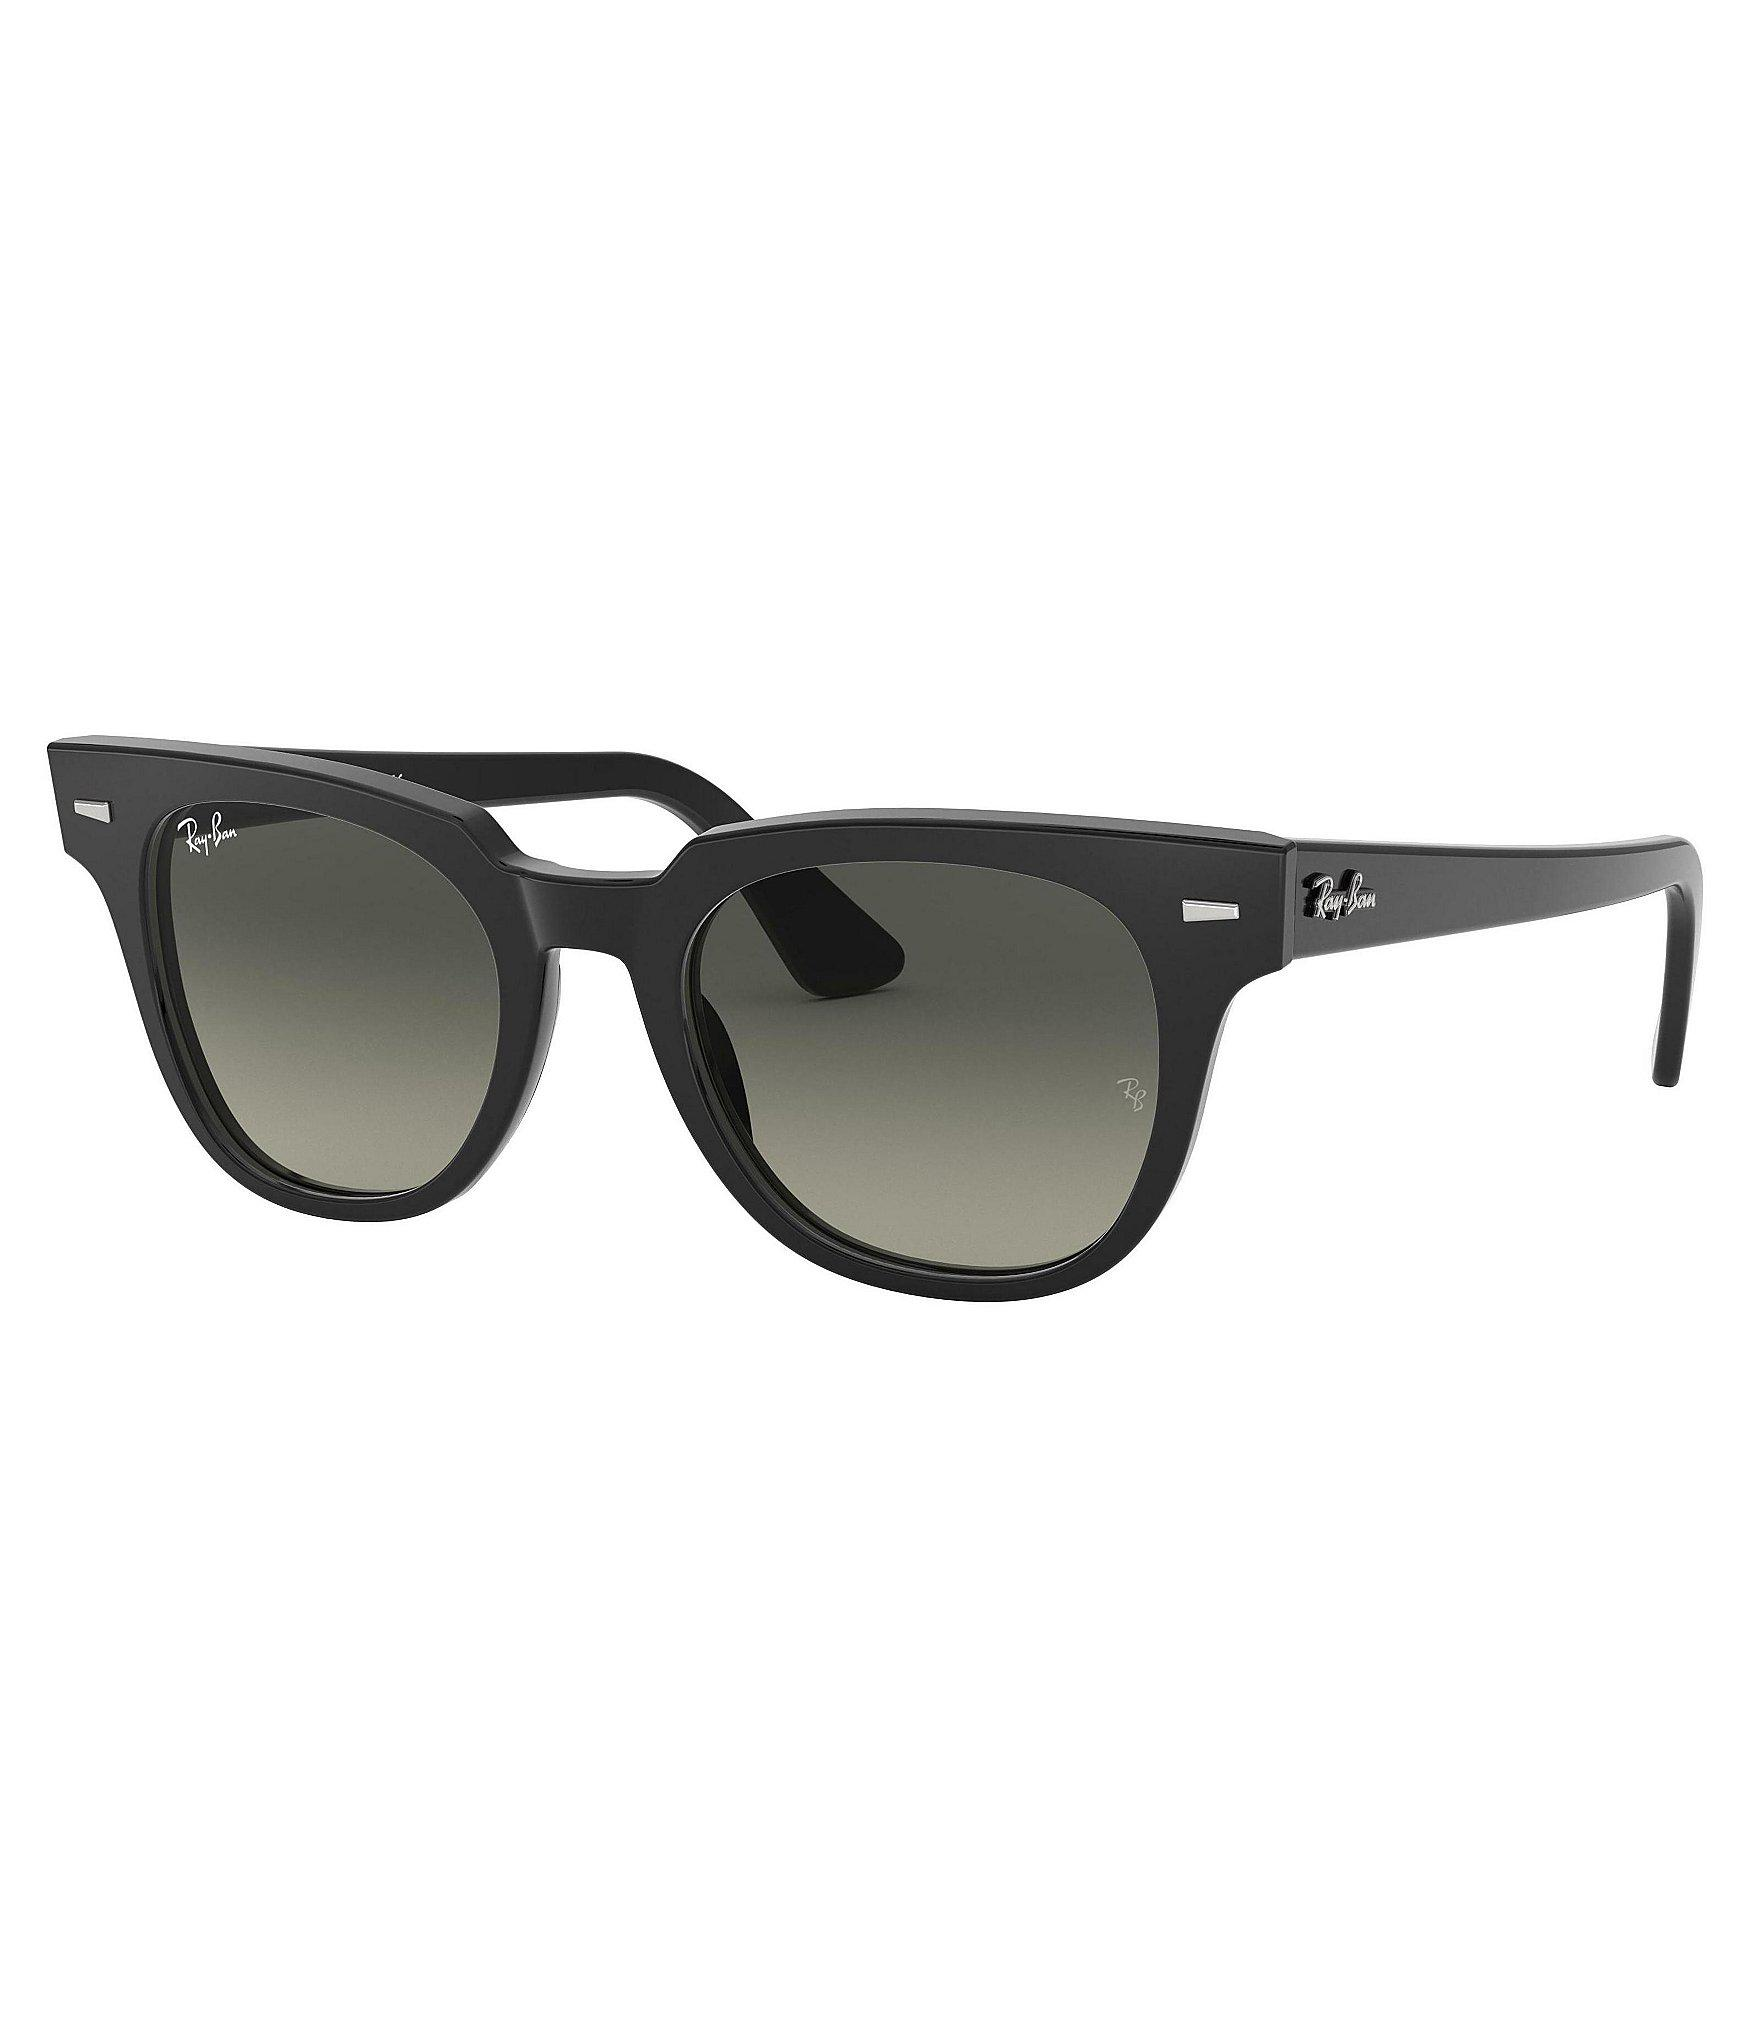 8fa15ded501 Lyst - Ray-Ban Meteor Classic Sunglasses in Black for Men - Save 8%